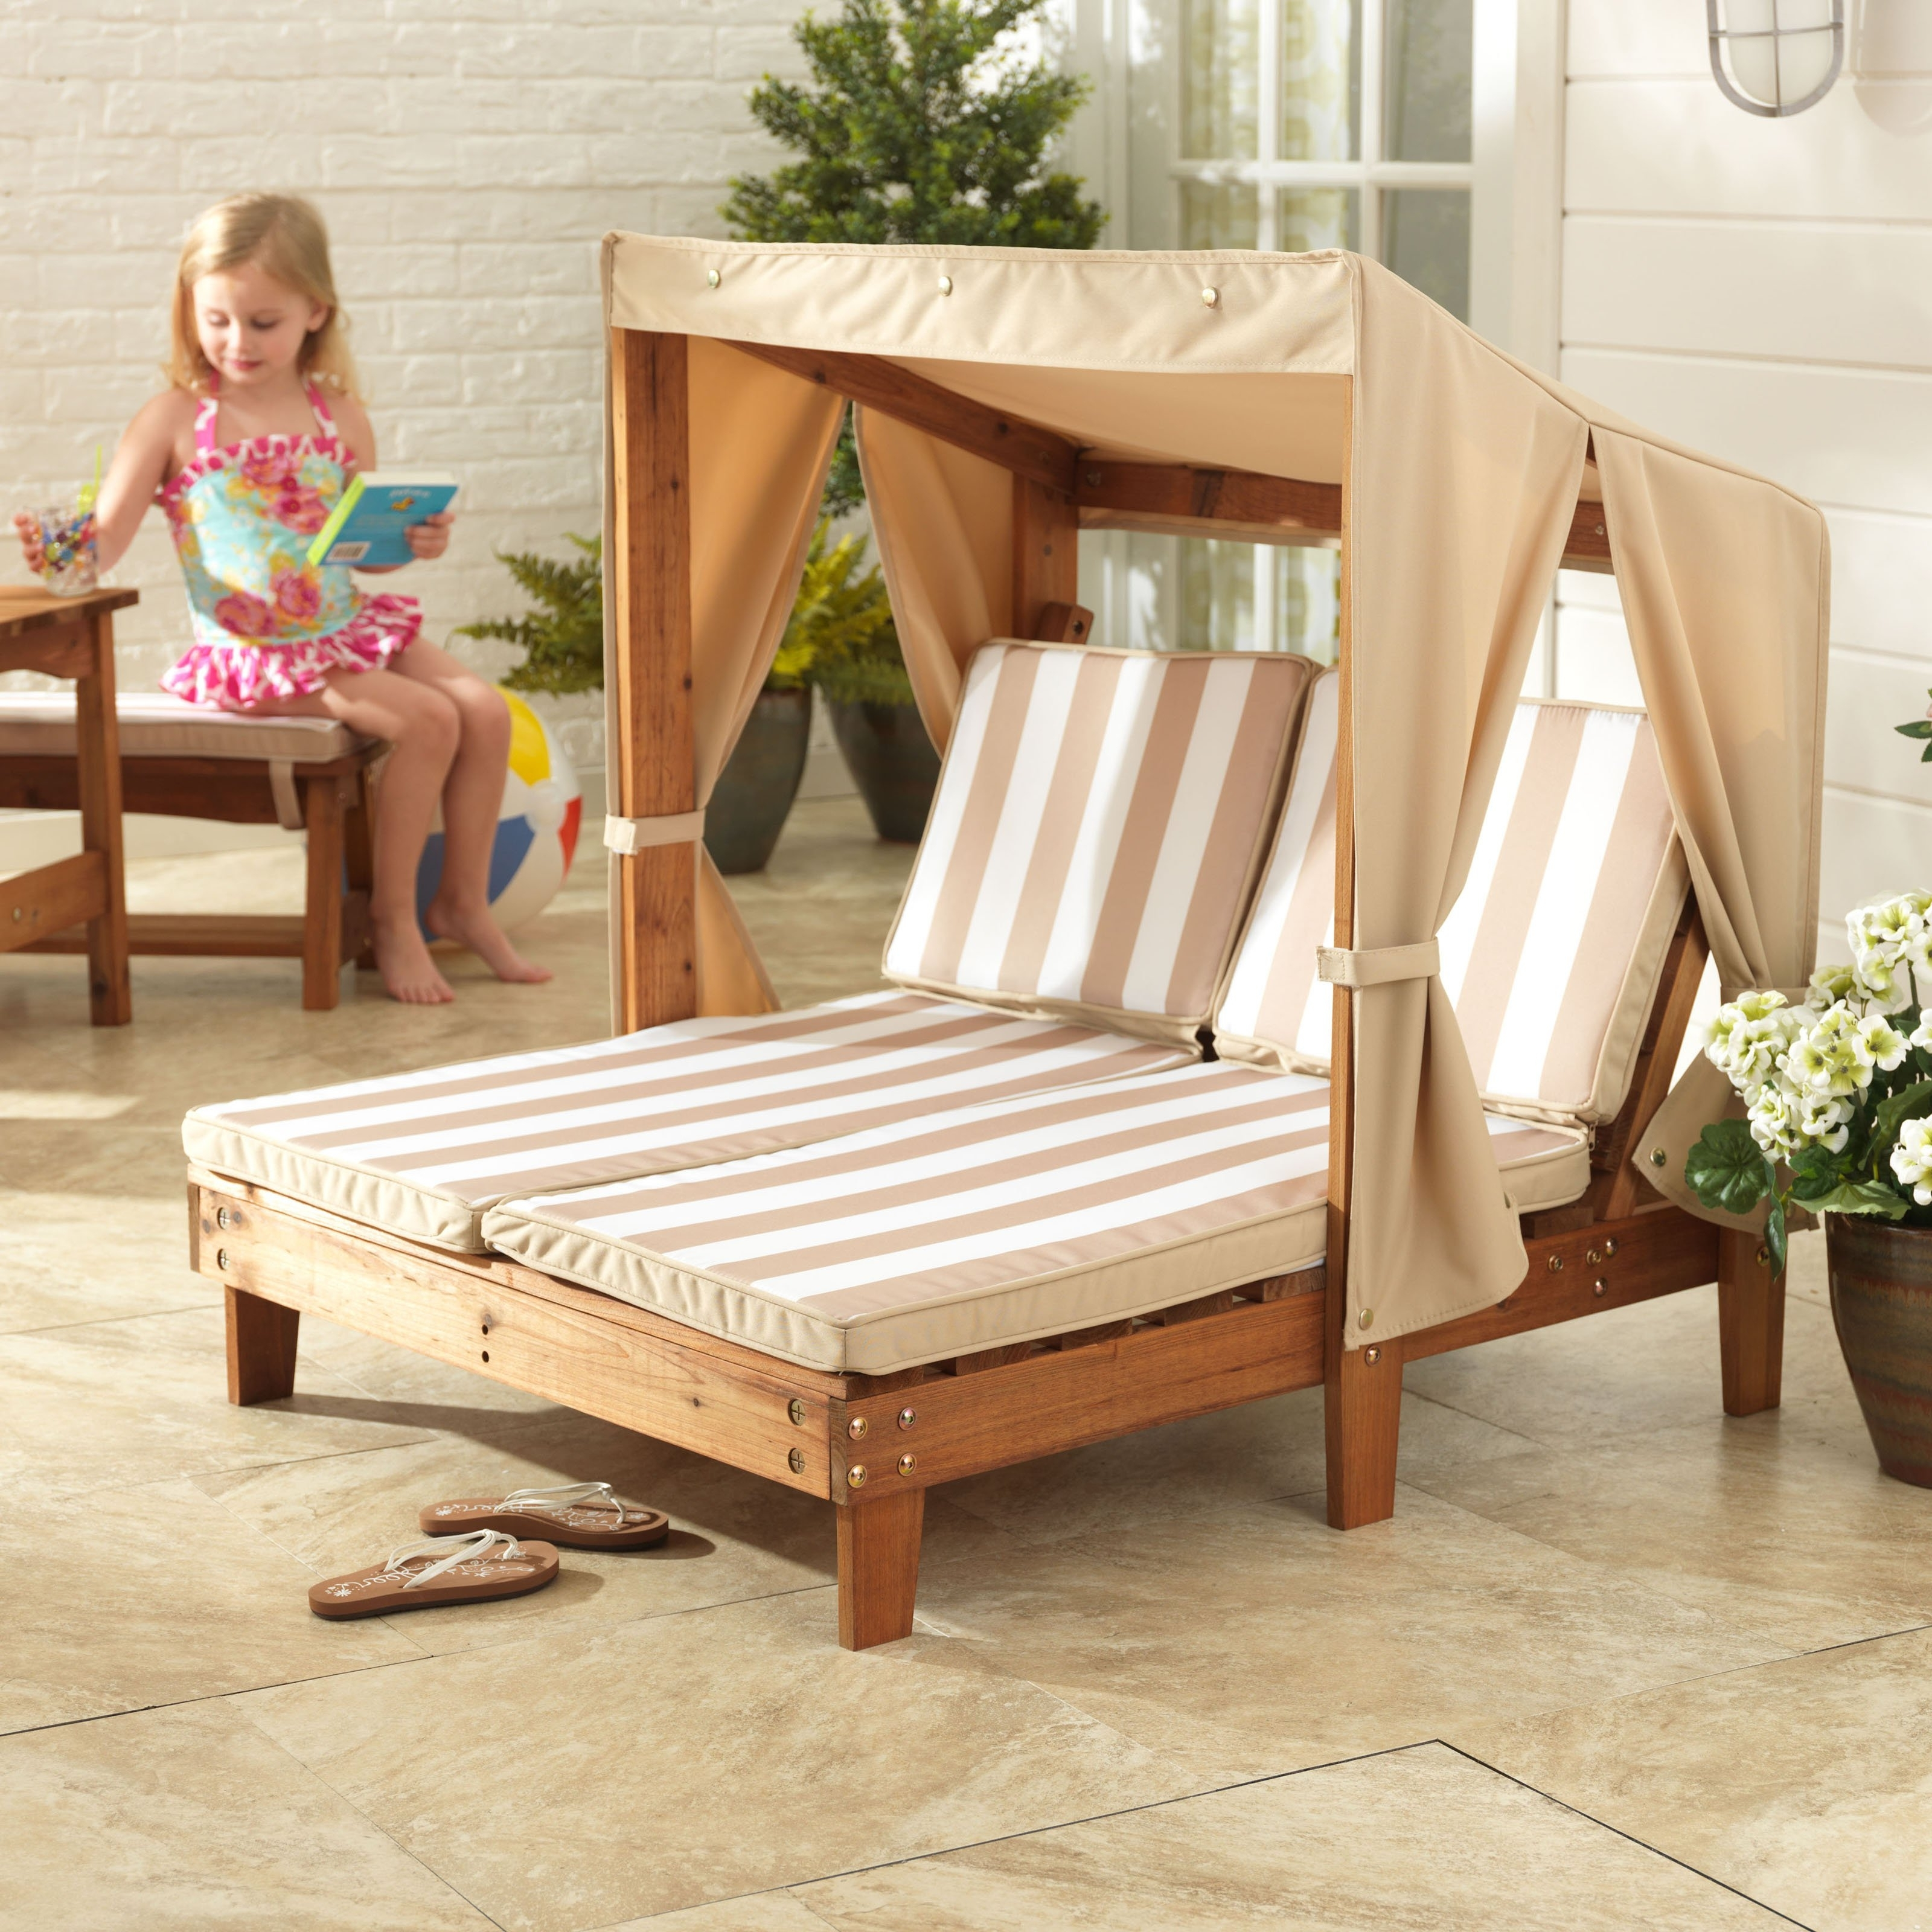 Kids Chaises With Current Kidkraft Double Chaise Chair – 502 – Walmart (Gallery 11 of 15)